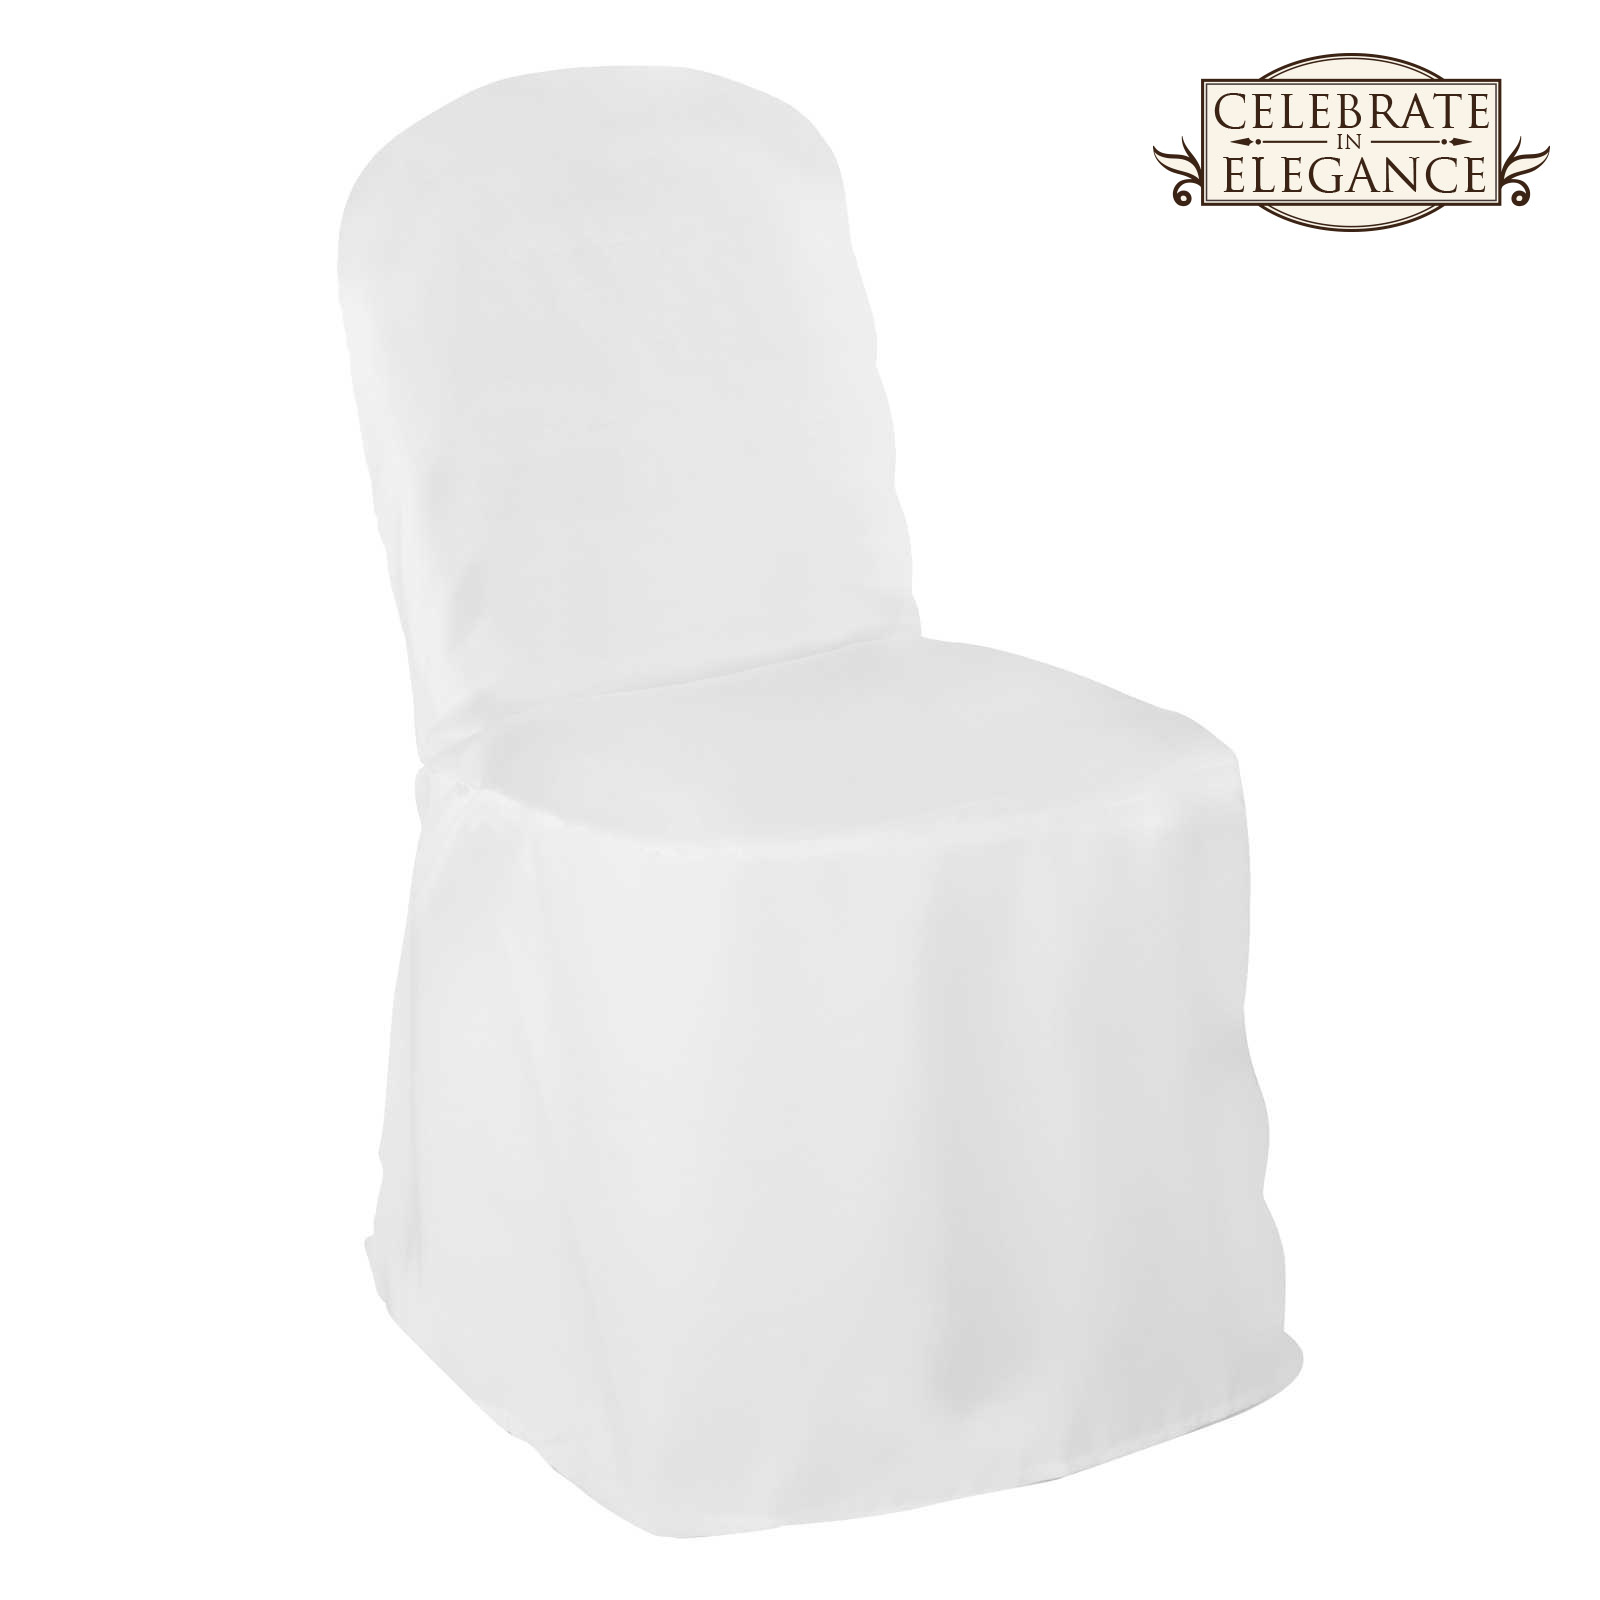 polyester banquet chair covers swing frame 10 wedding party décor ebay